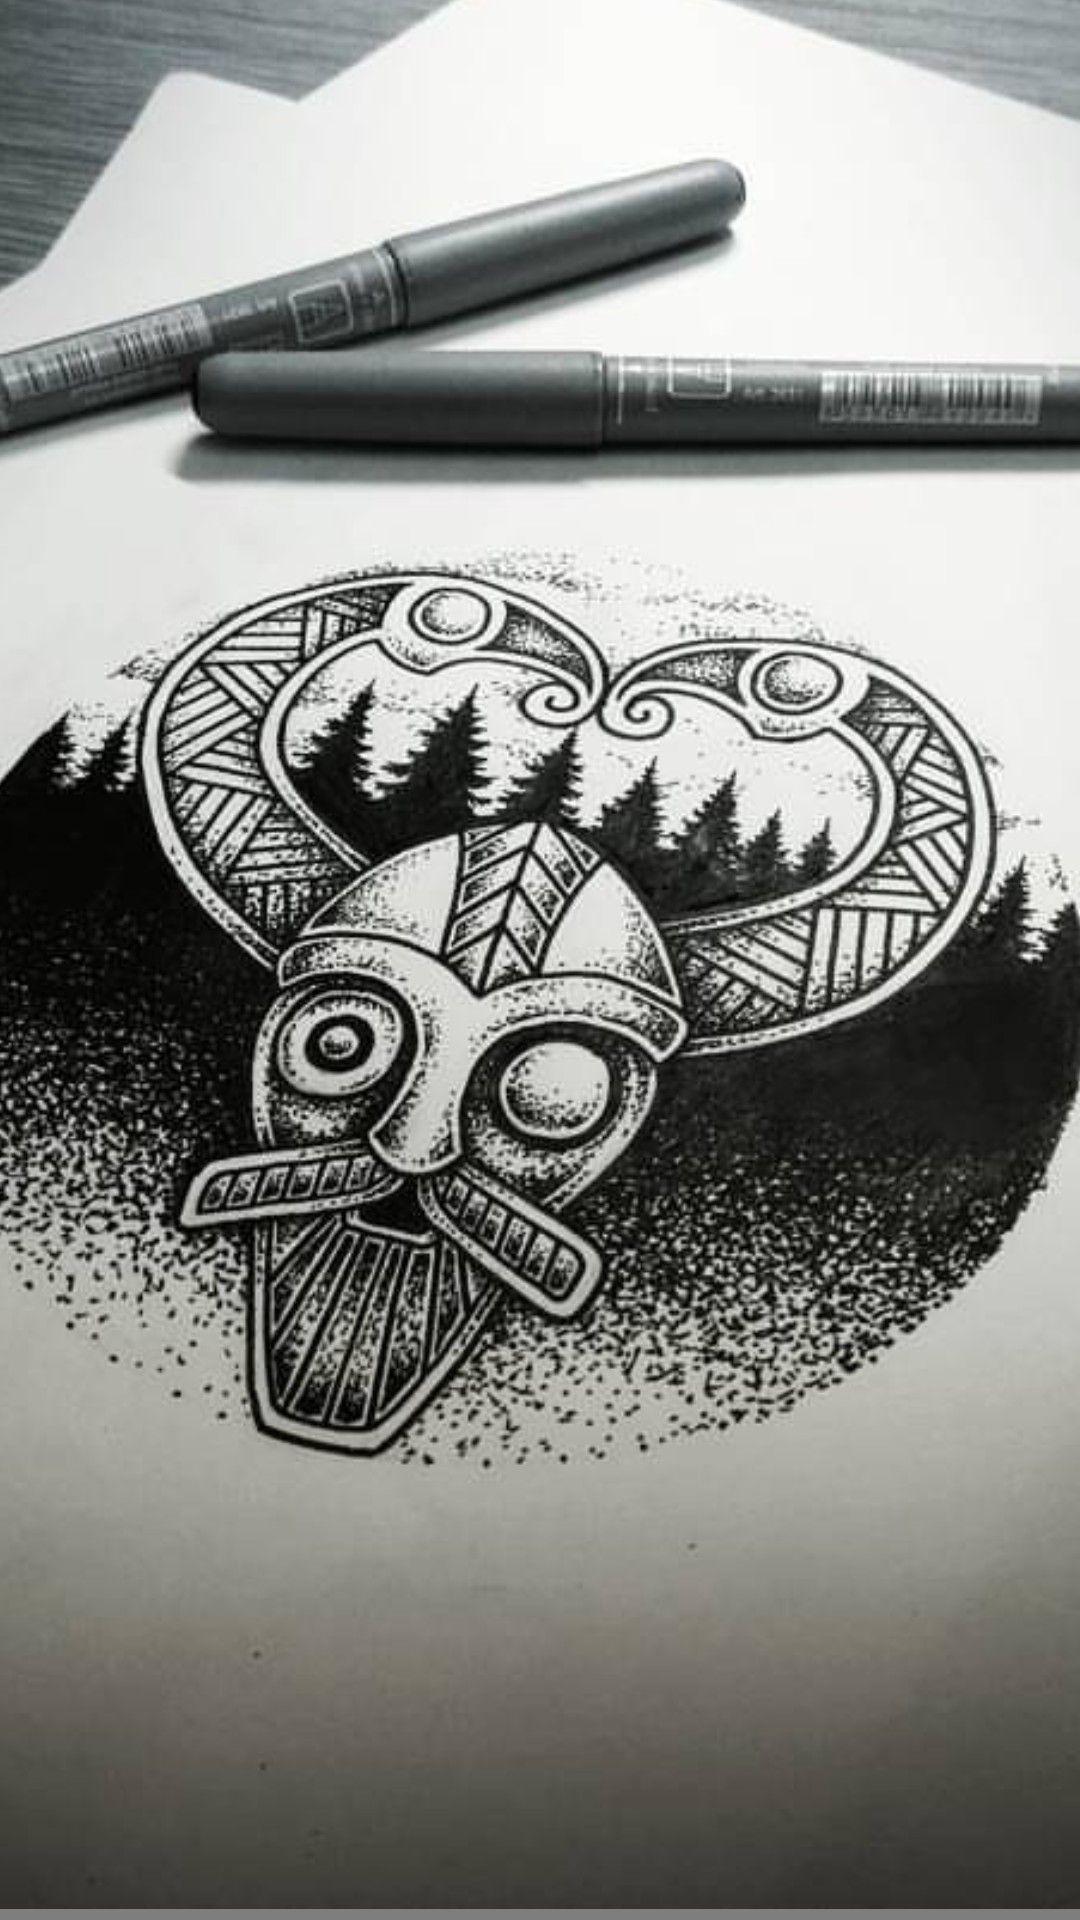 Pin by ryen blair on Tattoo (With images) | Traditional ...